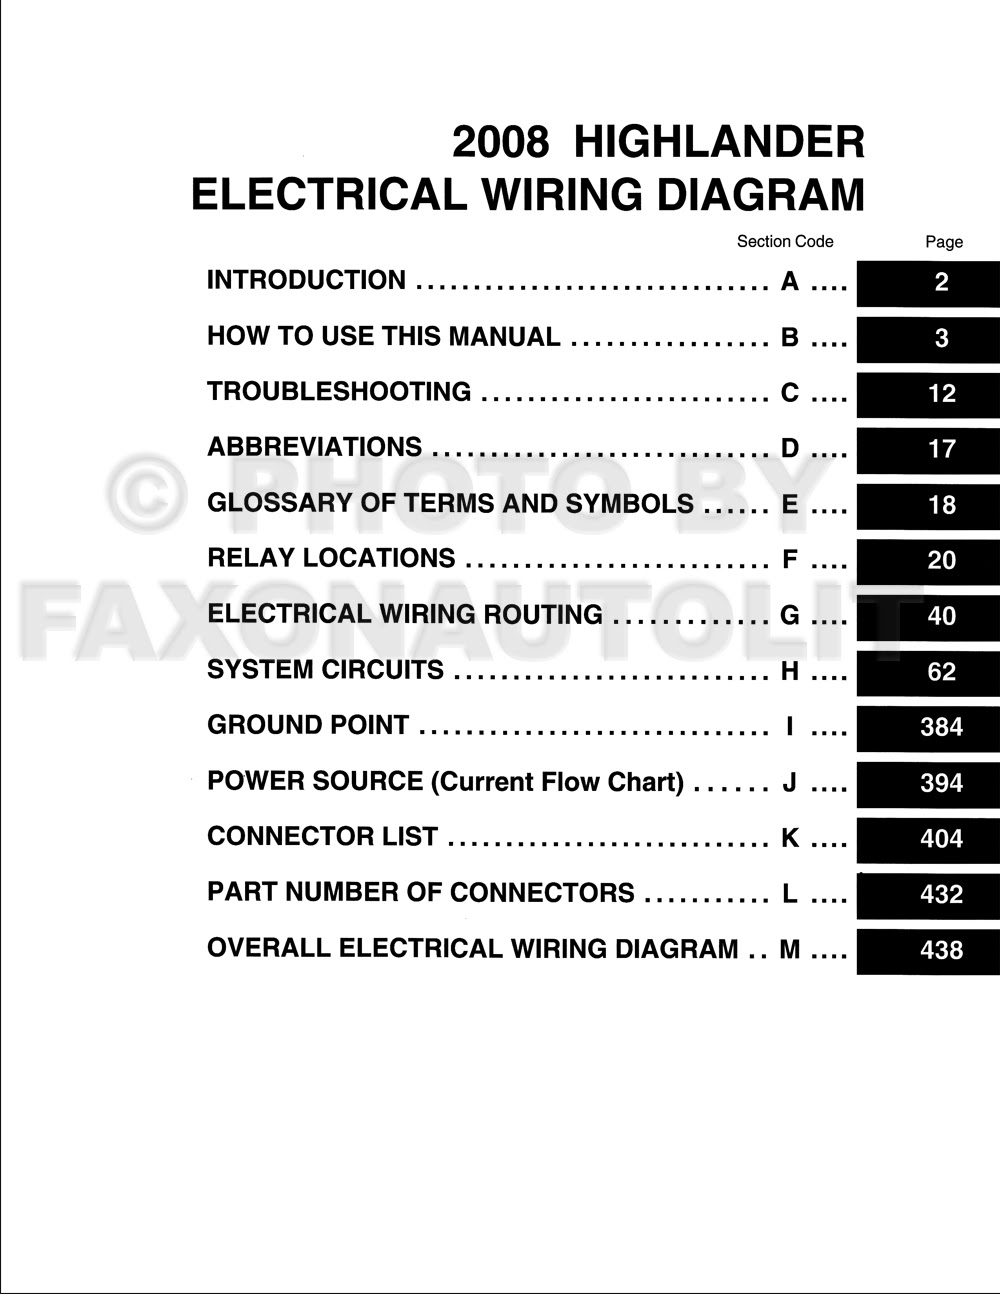 2008 Toyota Highlander Wiring Diagram Wiring Diagram Neutral Neutral Emilia Fise It